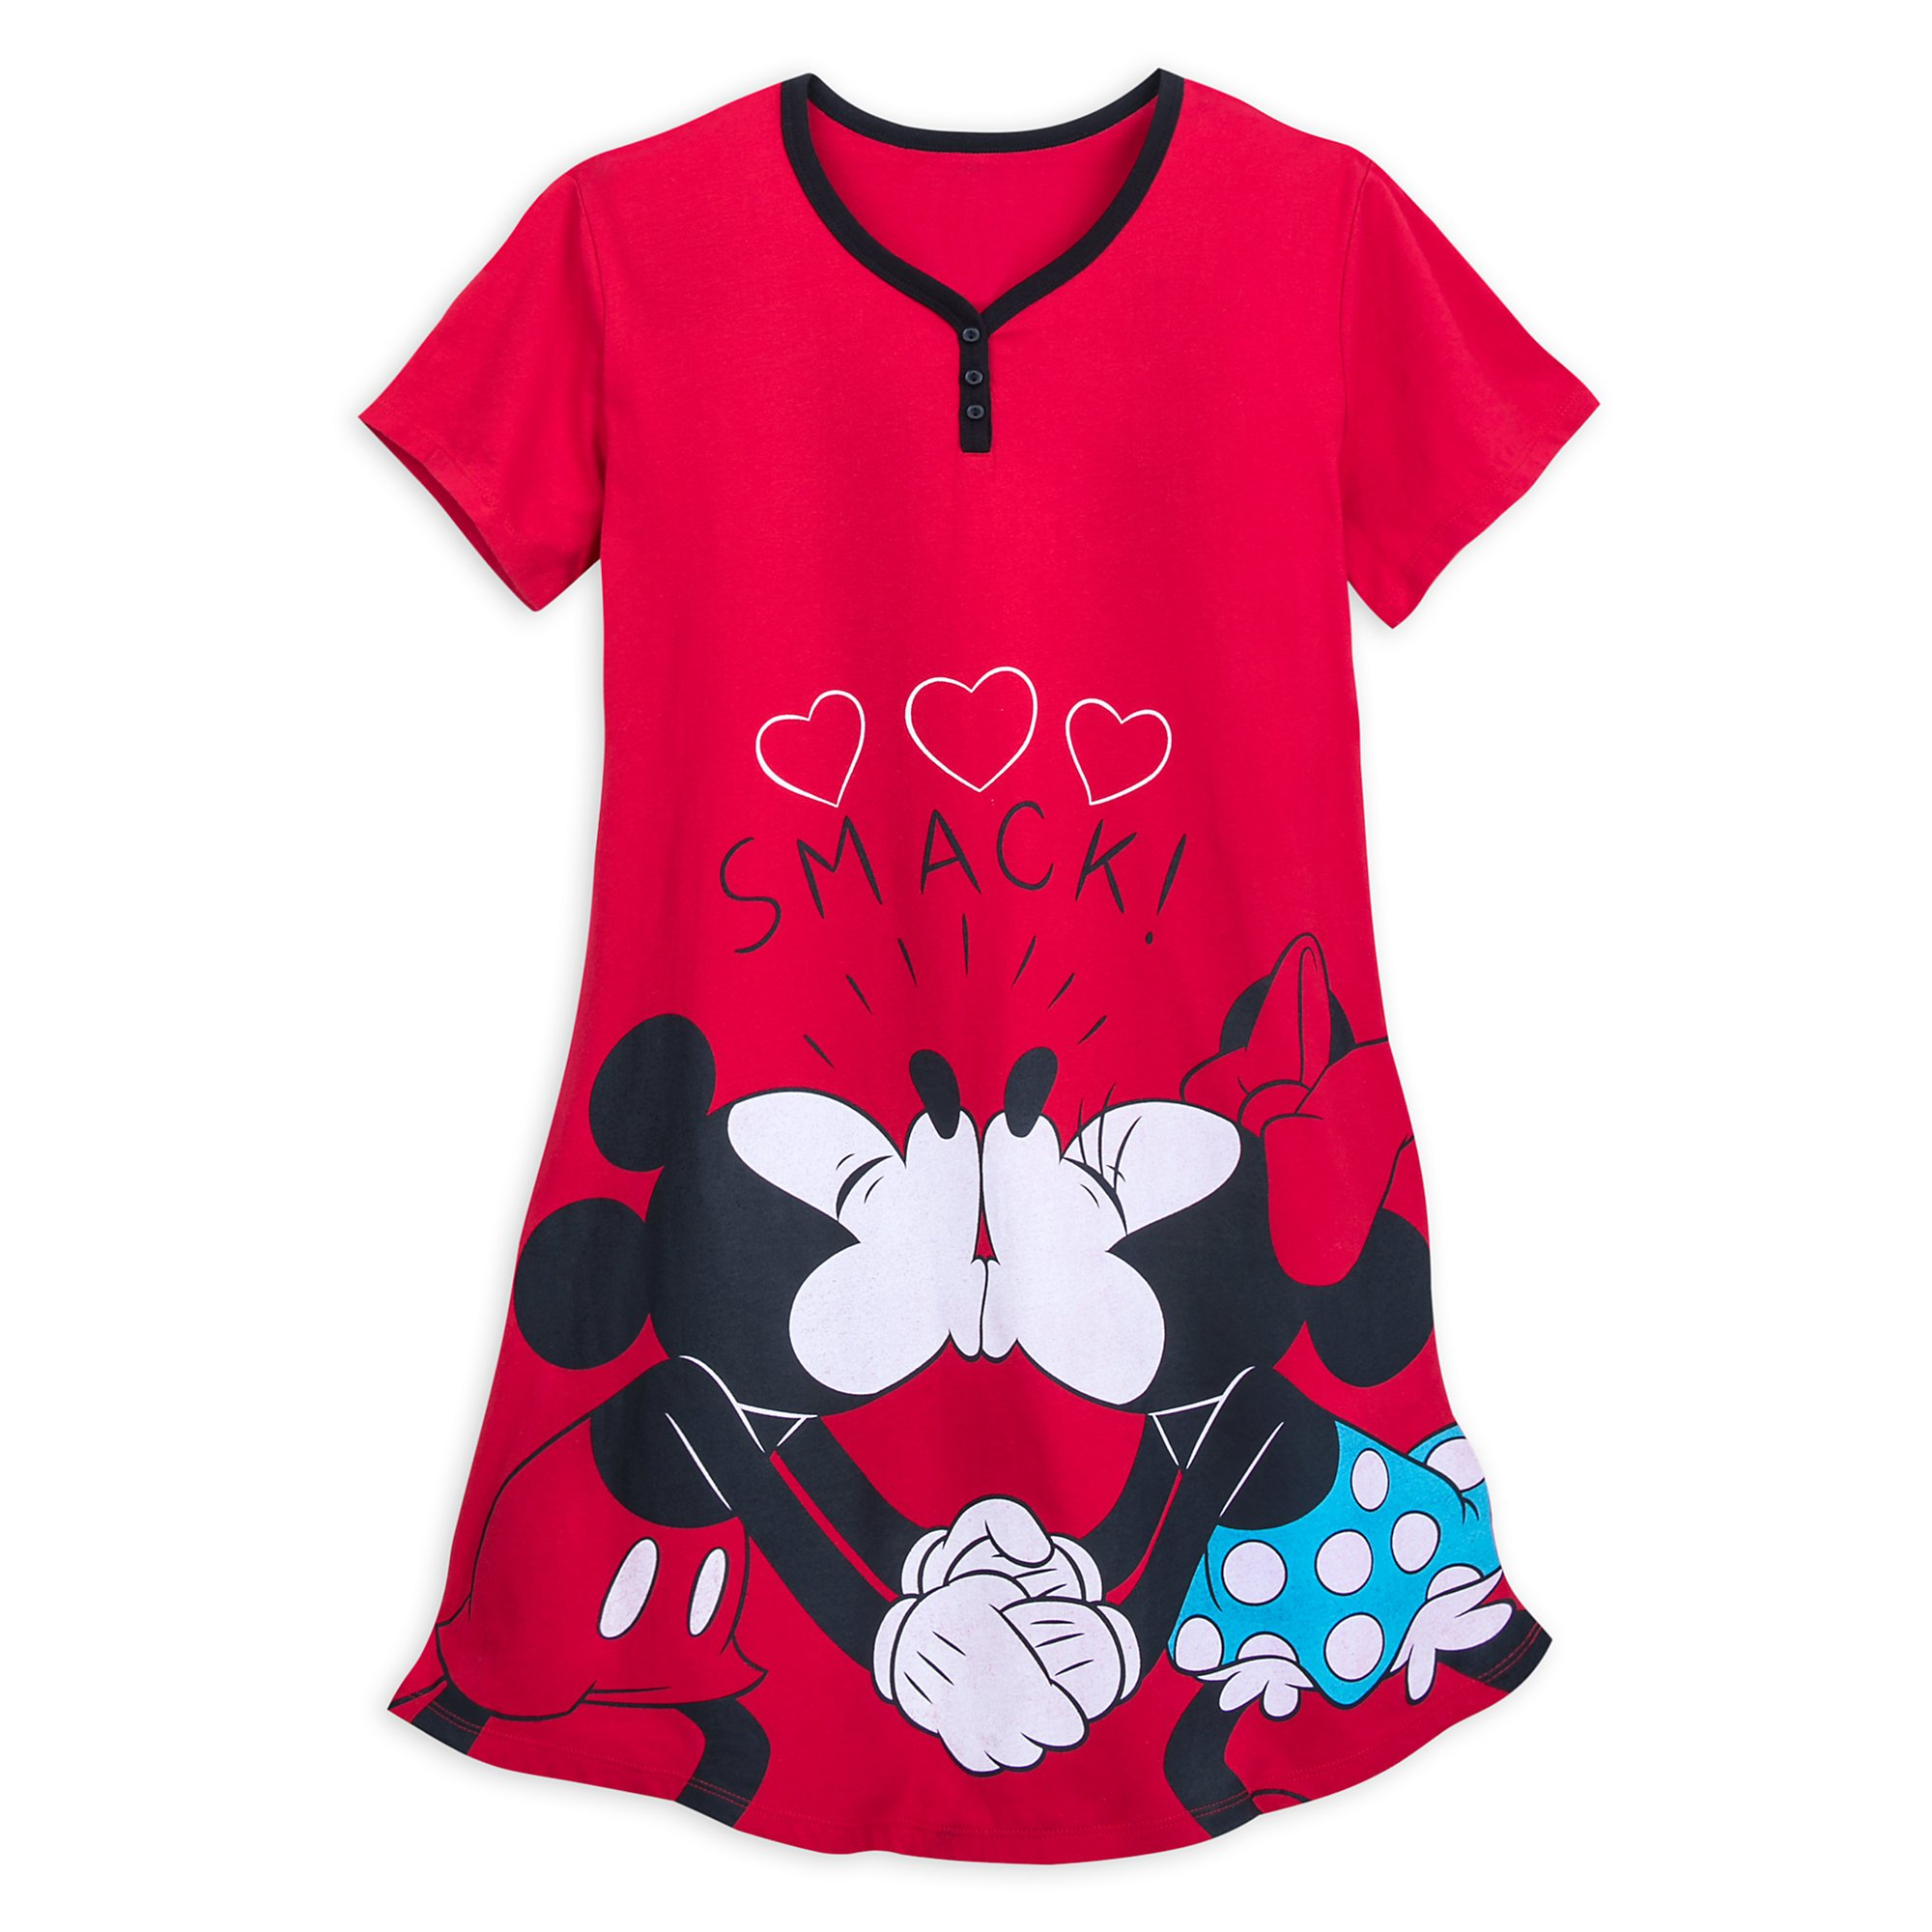 Disney Mickey and Minnie Mouse Nightshirt for Women Size XL/2XL Multi